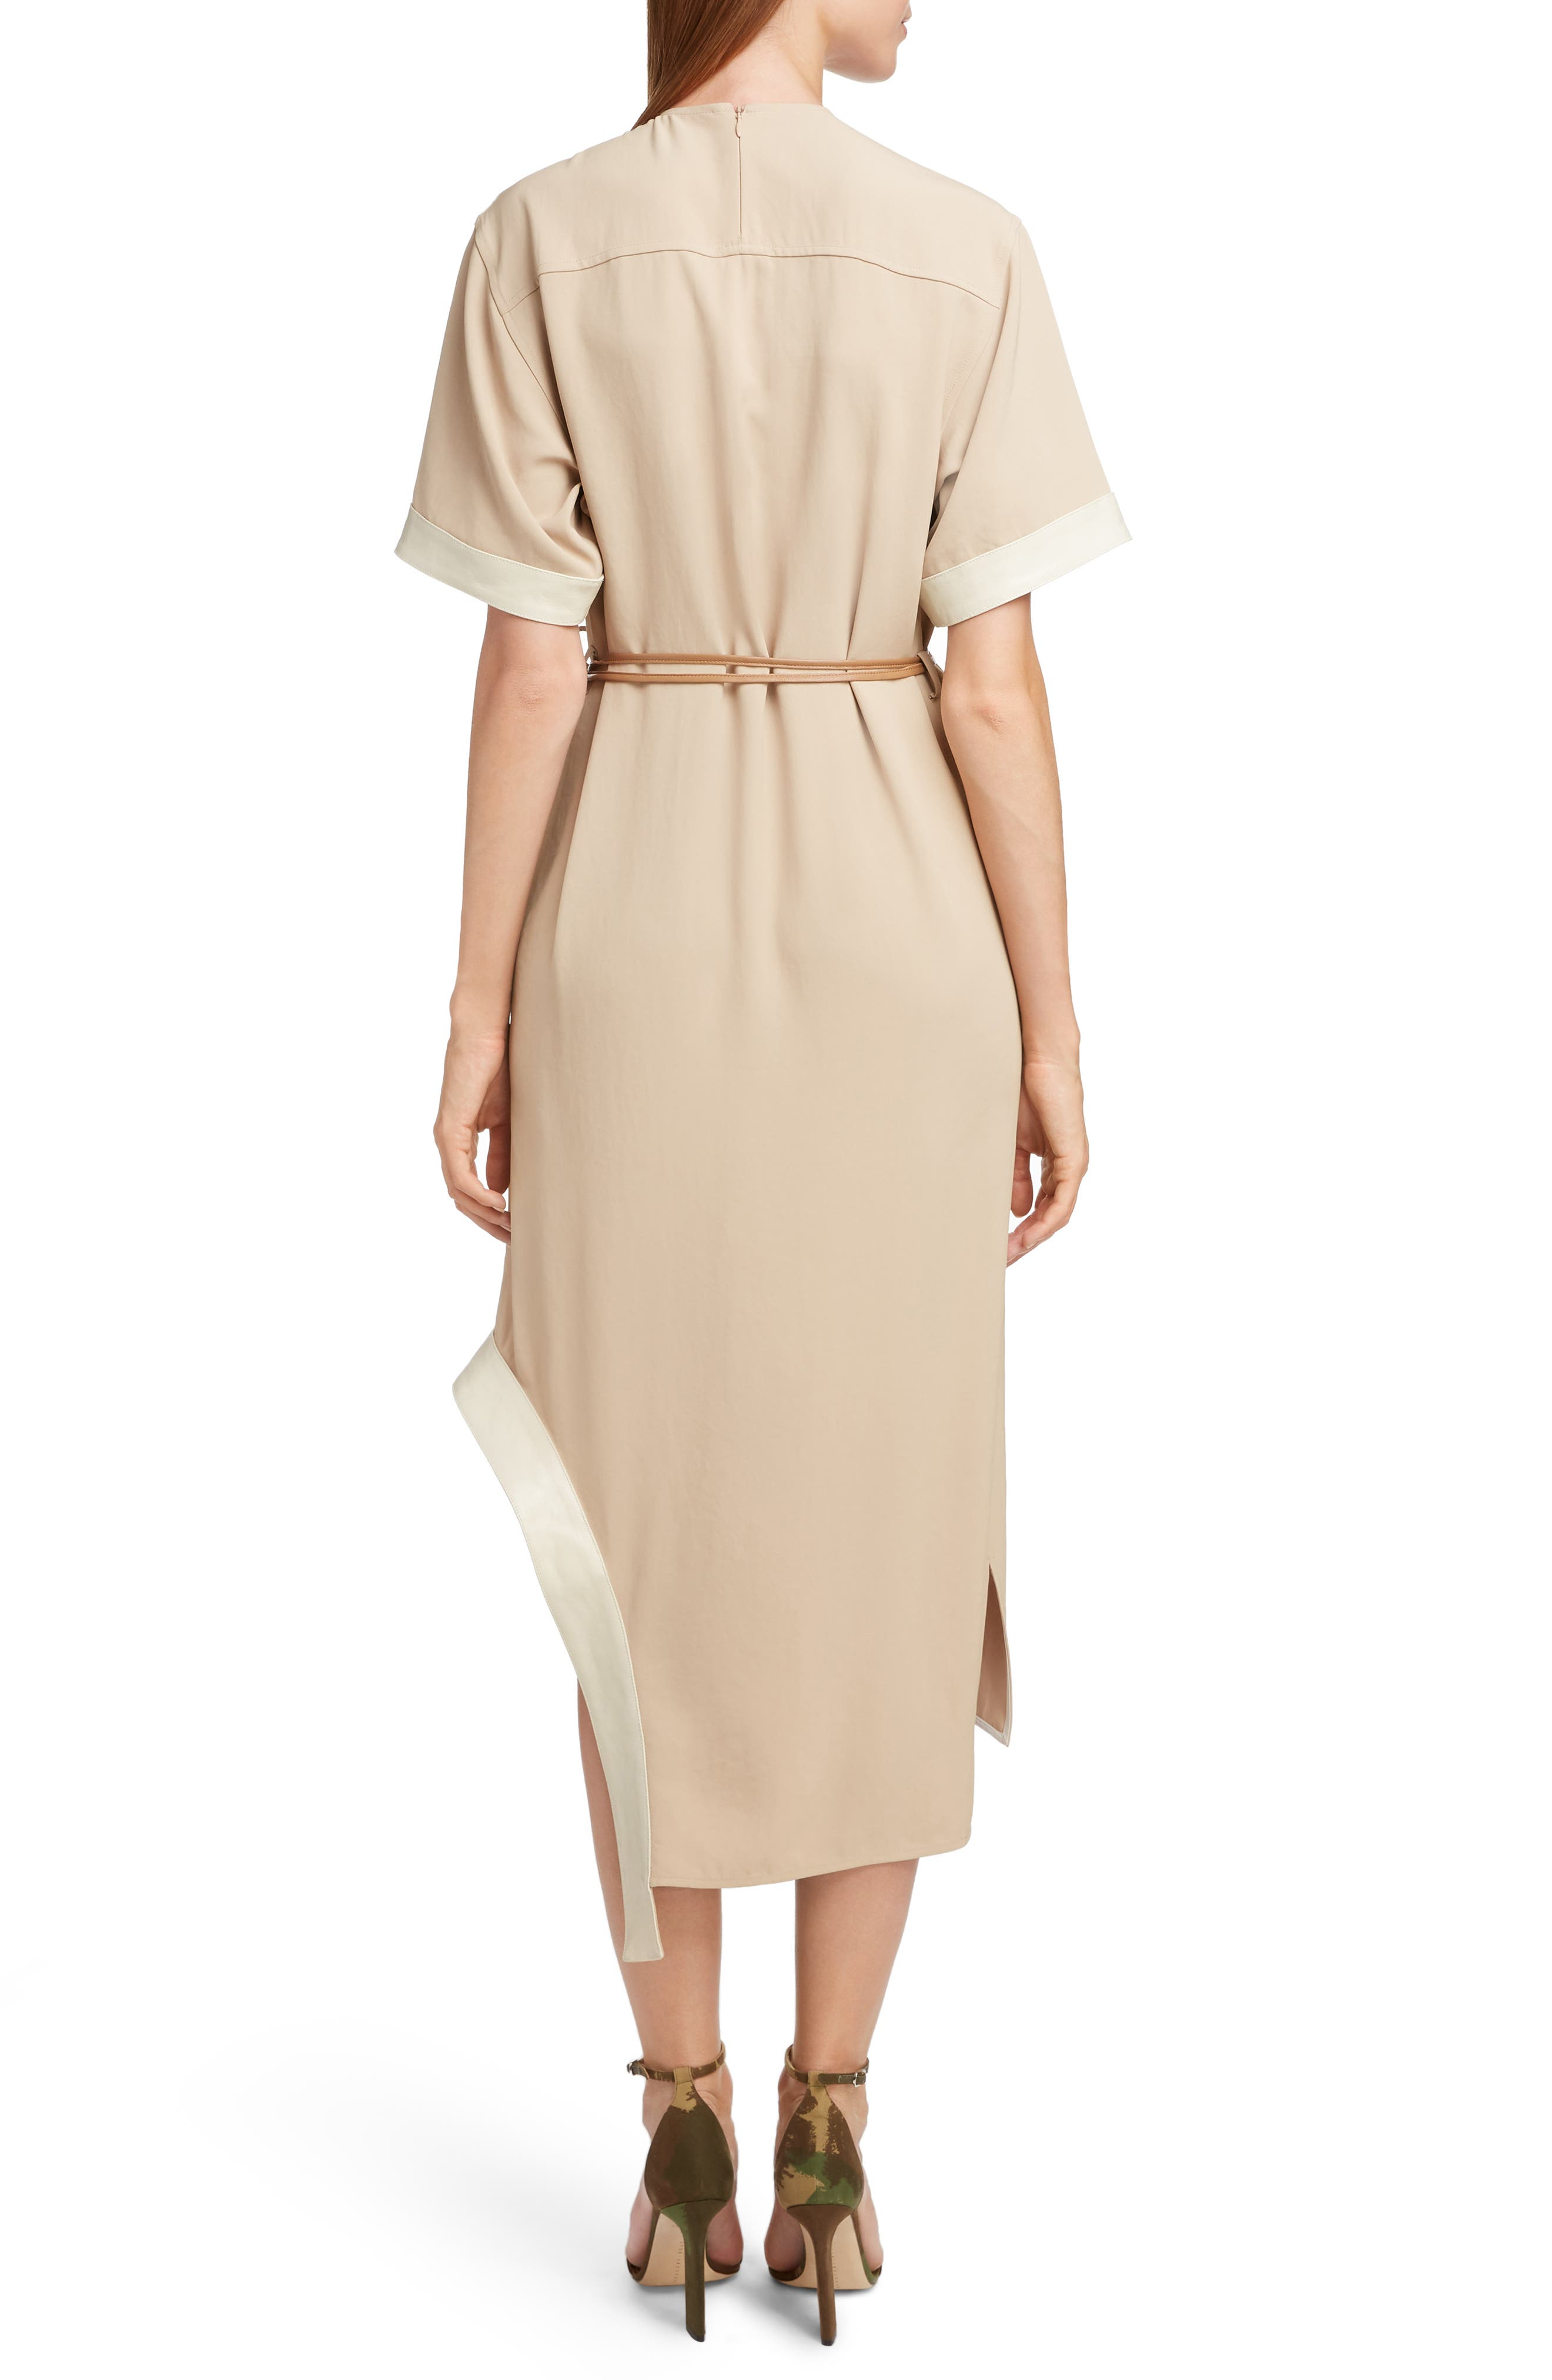 VICTORIA BECKHAM, Leather Belt Asymmetrical Dress, Alternate thumbnail 2, color, BEIGE/ CAMEL